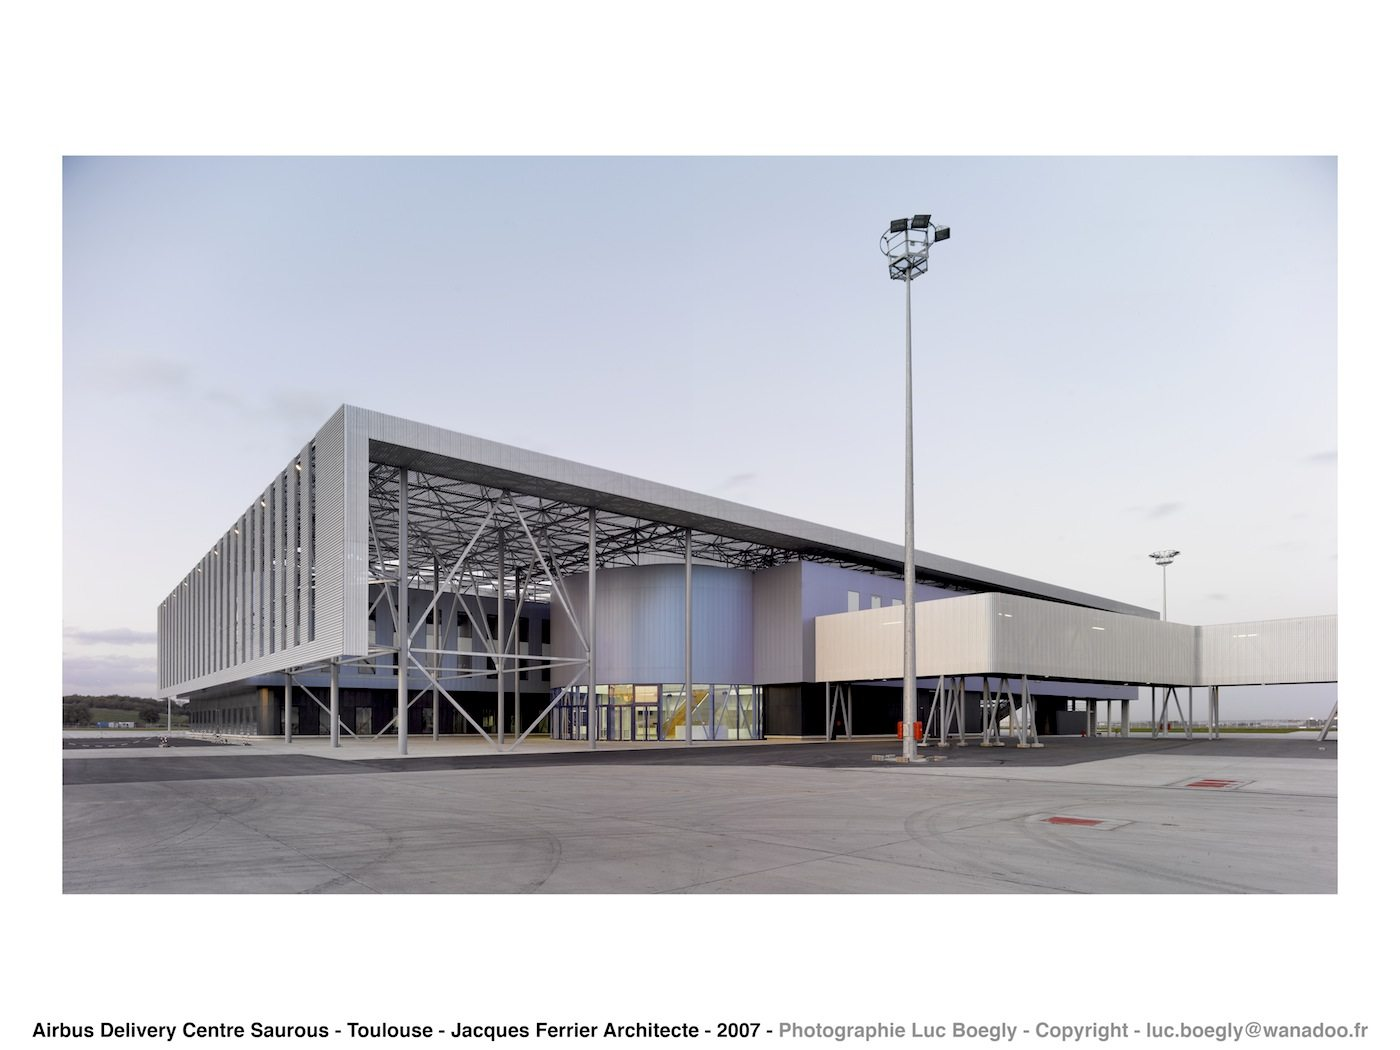 Airbus Delivery Centre.  in Toulouse, France. Completed: 2006